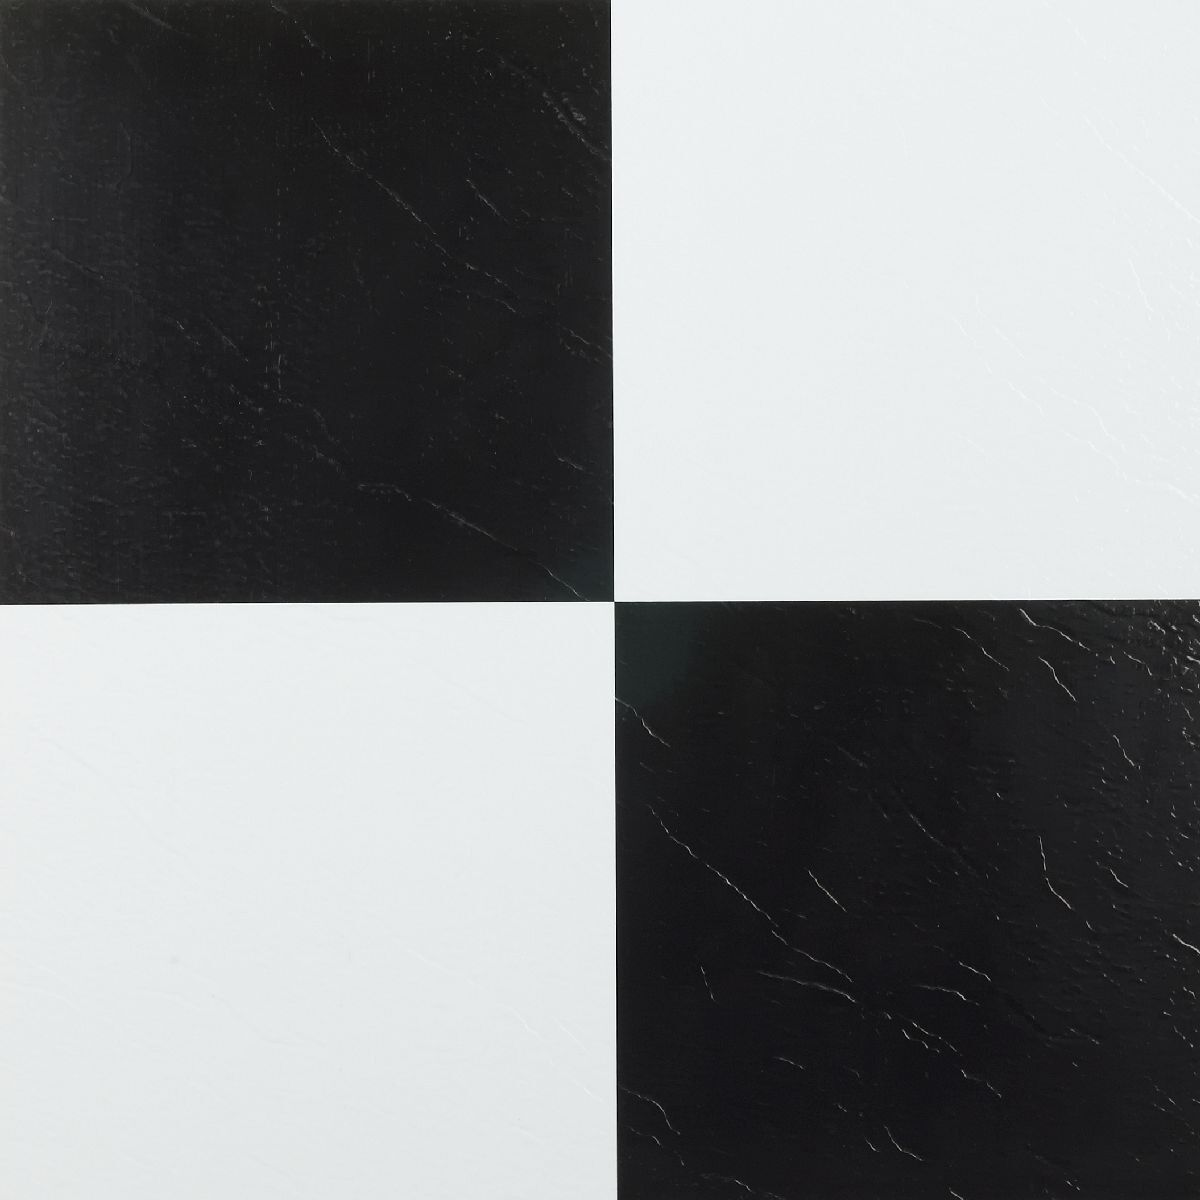 Peel And Stick Tile Self Adhesive Vinyl Flooring Black And W